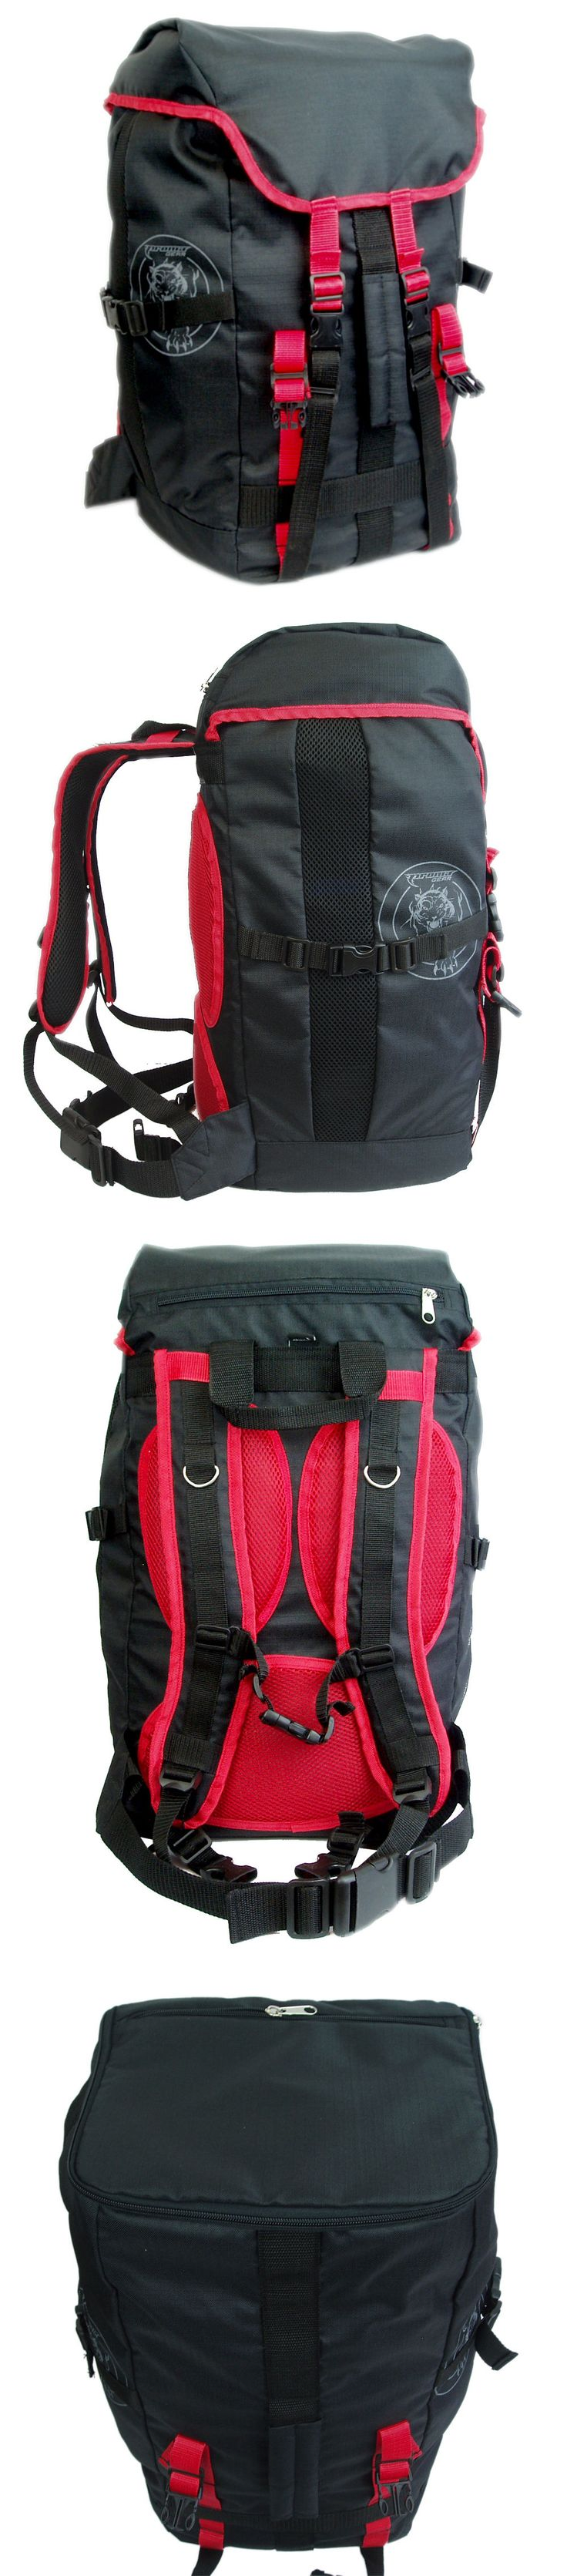 Other Combat Sport Training 179791: New Martial Arts Gear Bag Backpack For Taekwondo, Karate, Mma, Hapkido Equipment -> BUY IT NOW ONLY: $47.75 on eBay!